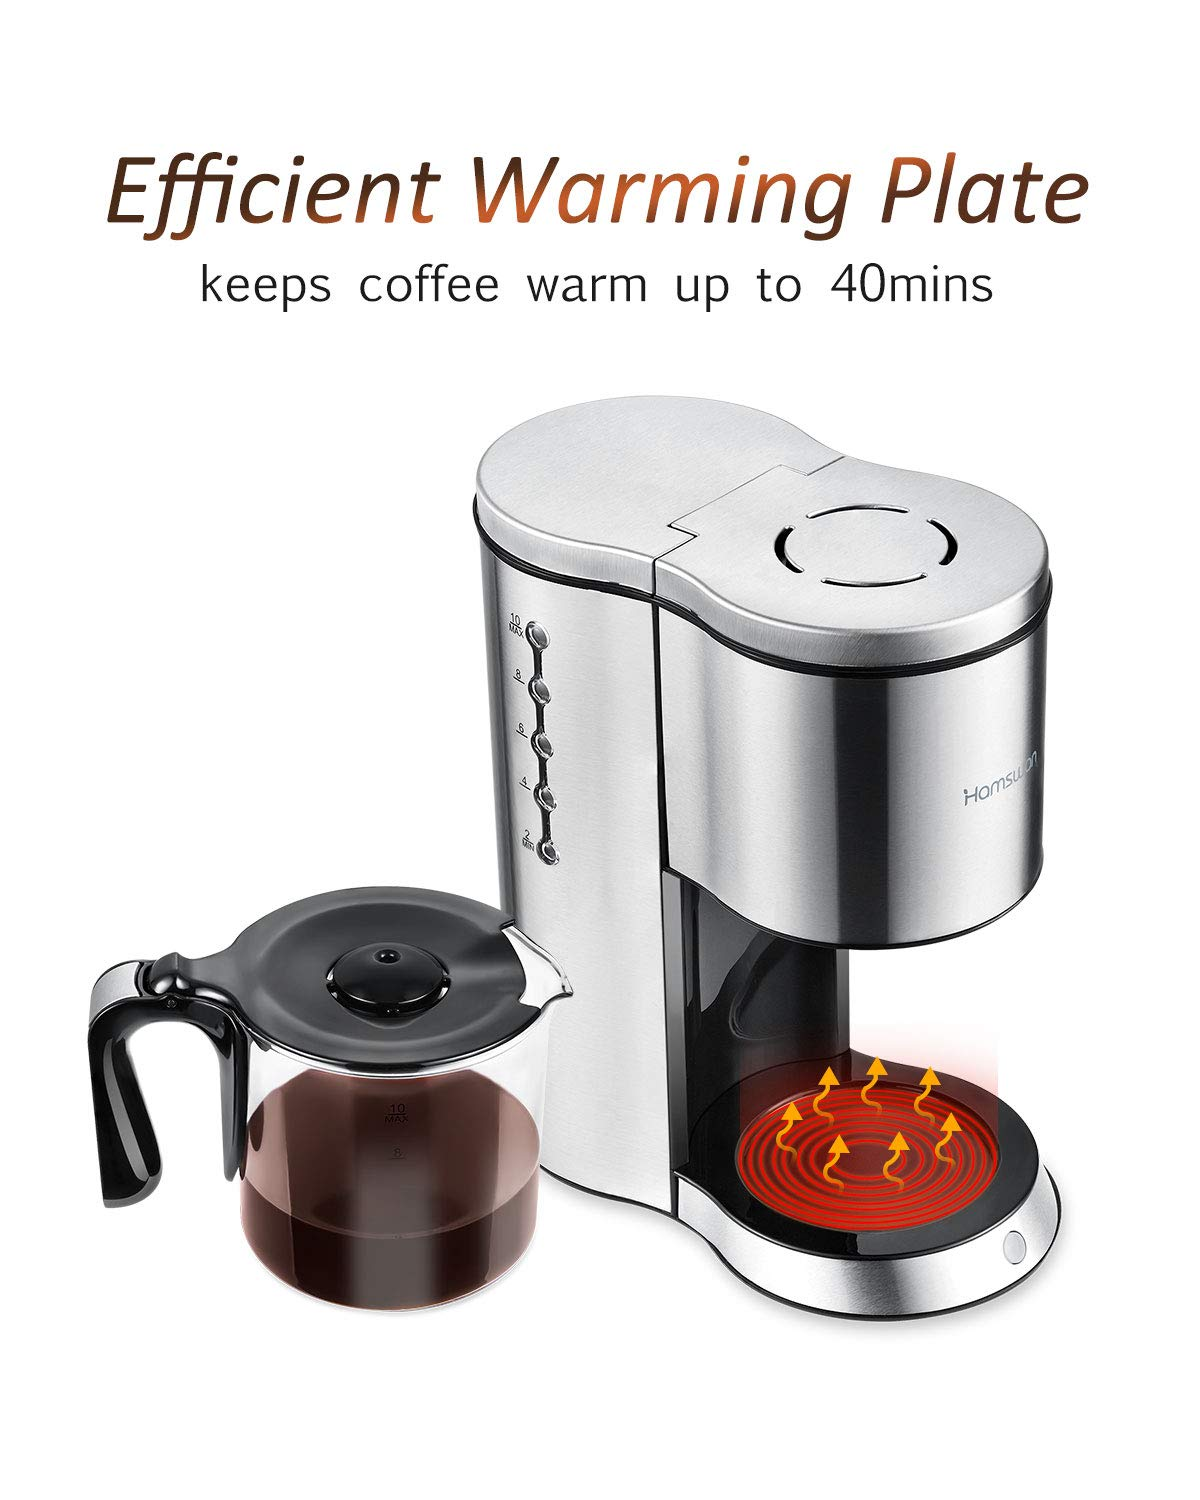 Drip Coffee Maker, HAMSWAN AD-103 Stainless Steel Coffee Maker Coffee Pot, Small 10 Cup Coffee Machine with Glass Thermal Carafe, Insulated, Keep Warm, Automatic Shut Off for Single Serve & House Use by HAMSWAN (Image #6)